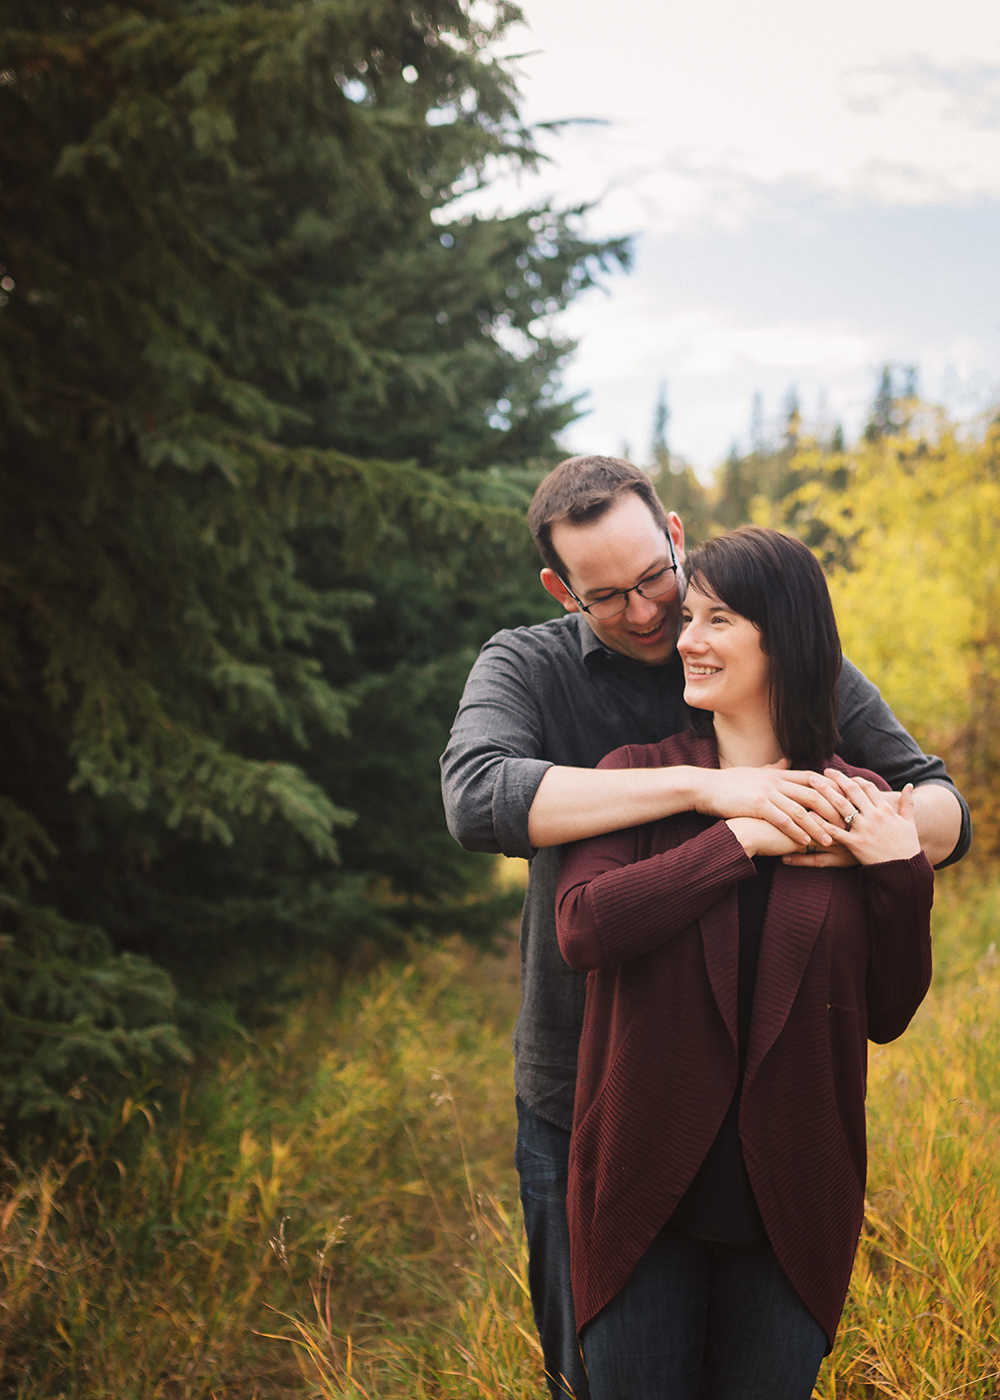 Edmonton Family Photographer_McRoberts Family Sneak Peek 7.jpg